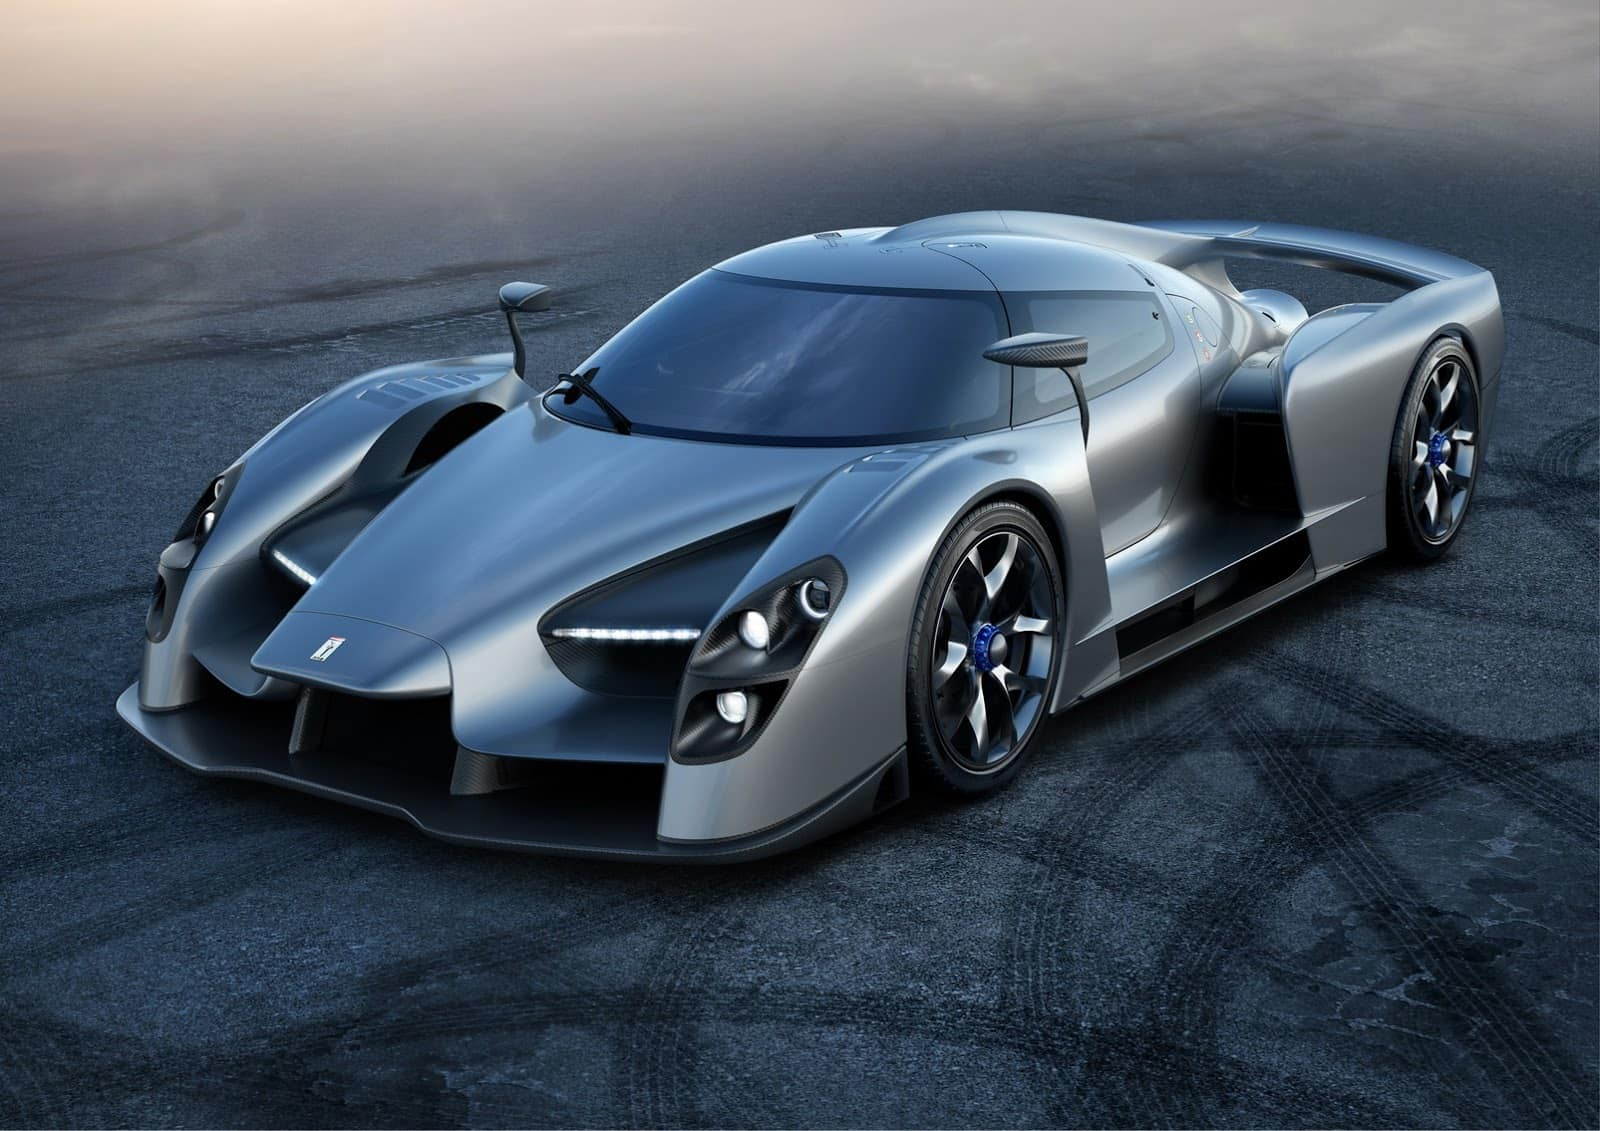 The Scg003s Claims The Title Of The World S Fastest Road